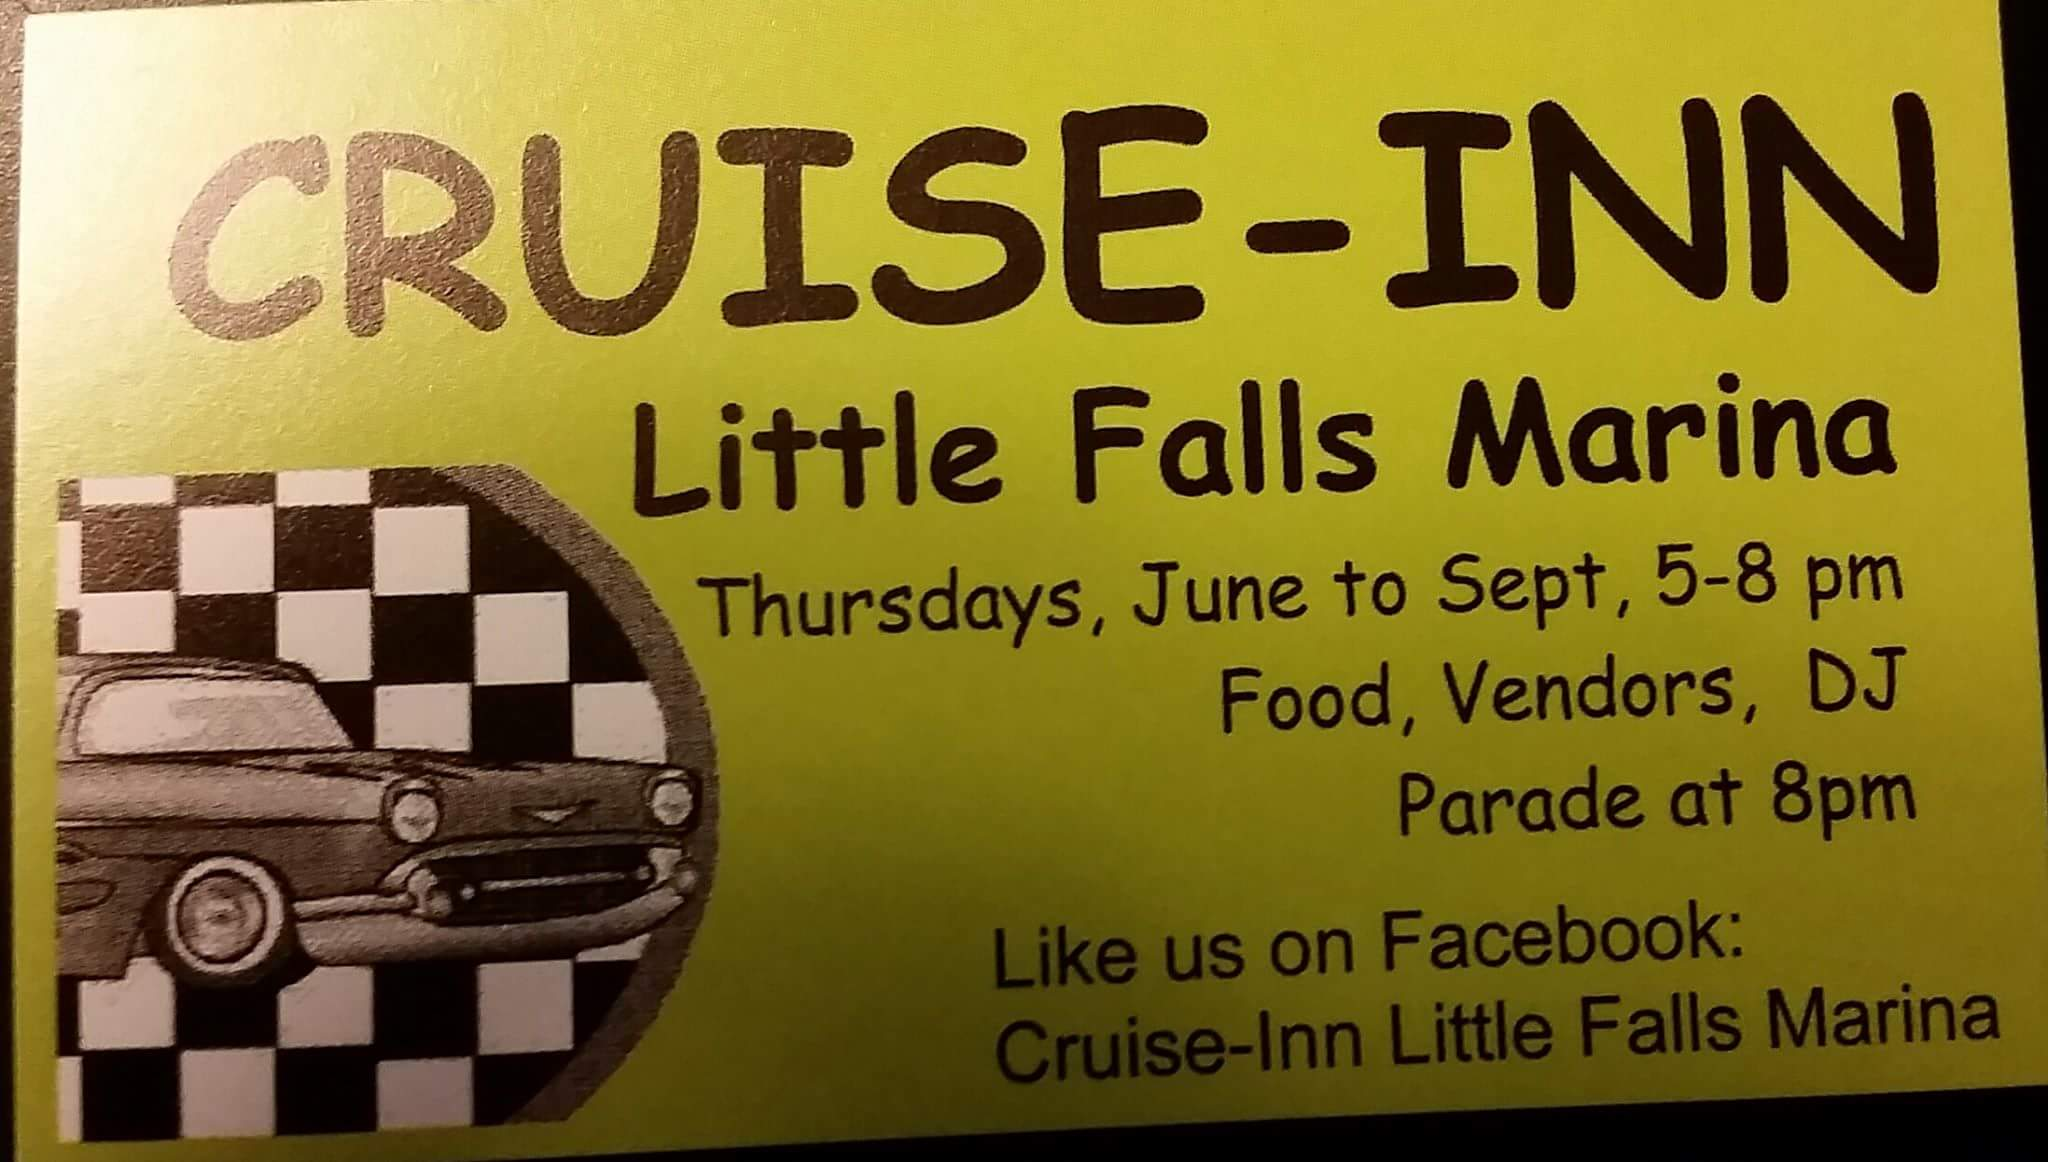 Cruise-Inn at the Little Falls Marina 2019 @ Little Falls Marina - Rotary Park